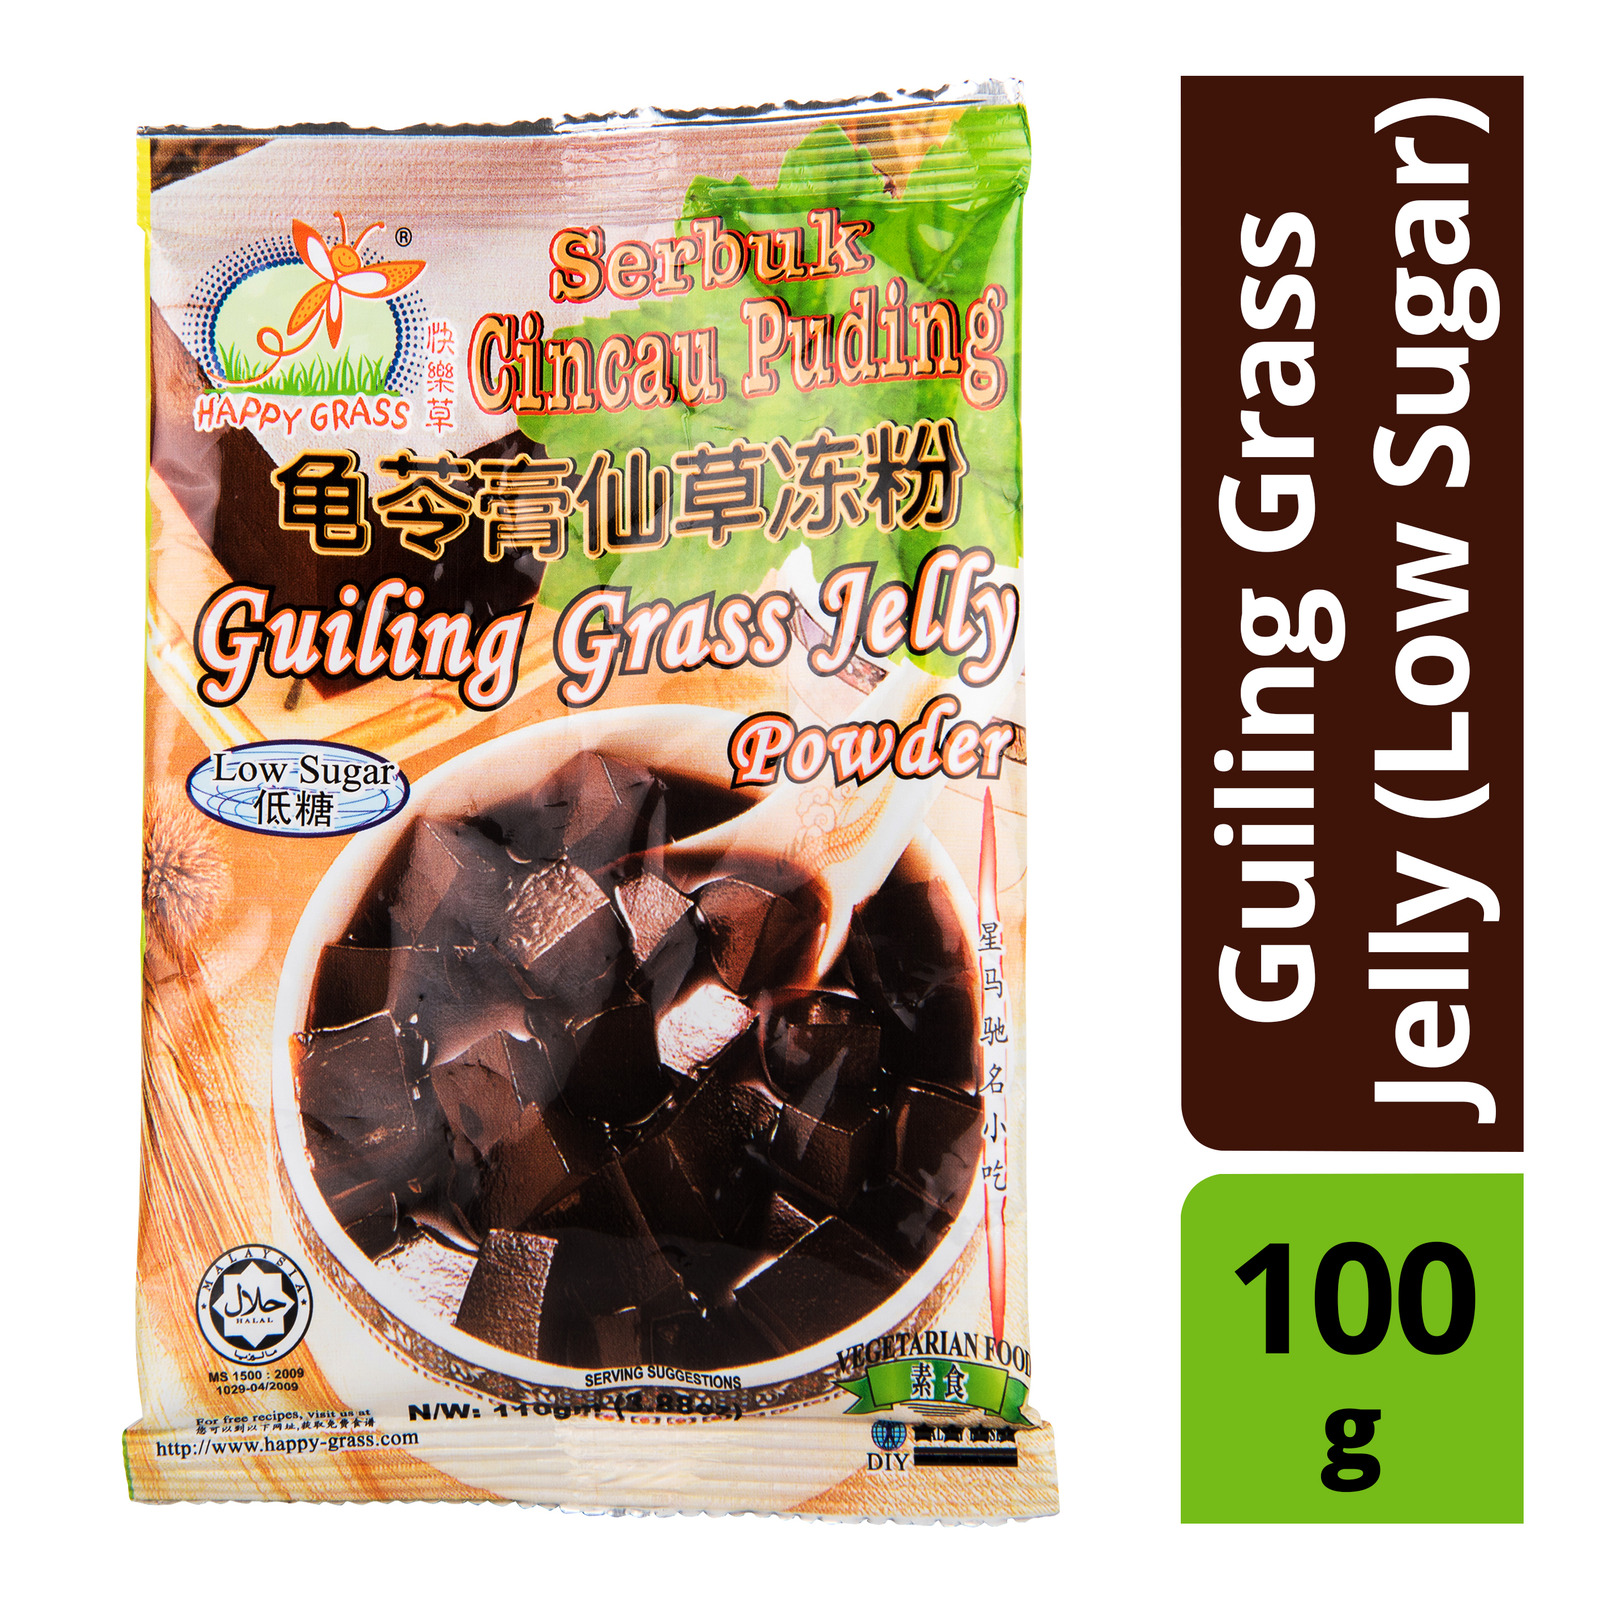 Happy Grass Powder - Guiling Grass Jelly (Low Sugar)